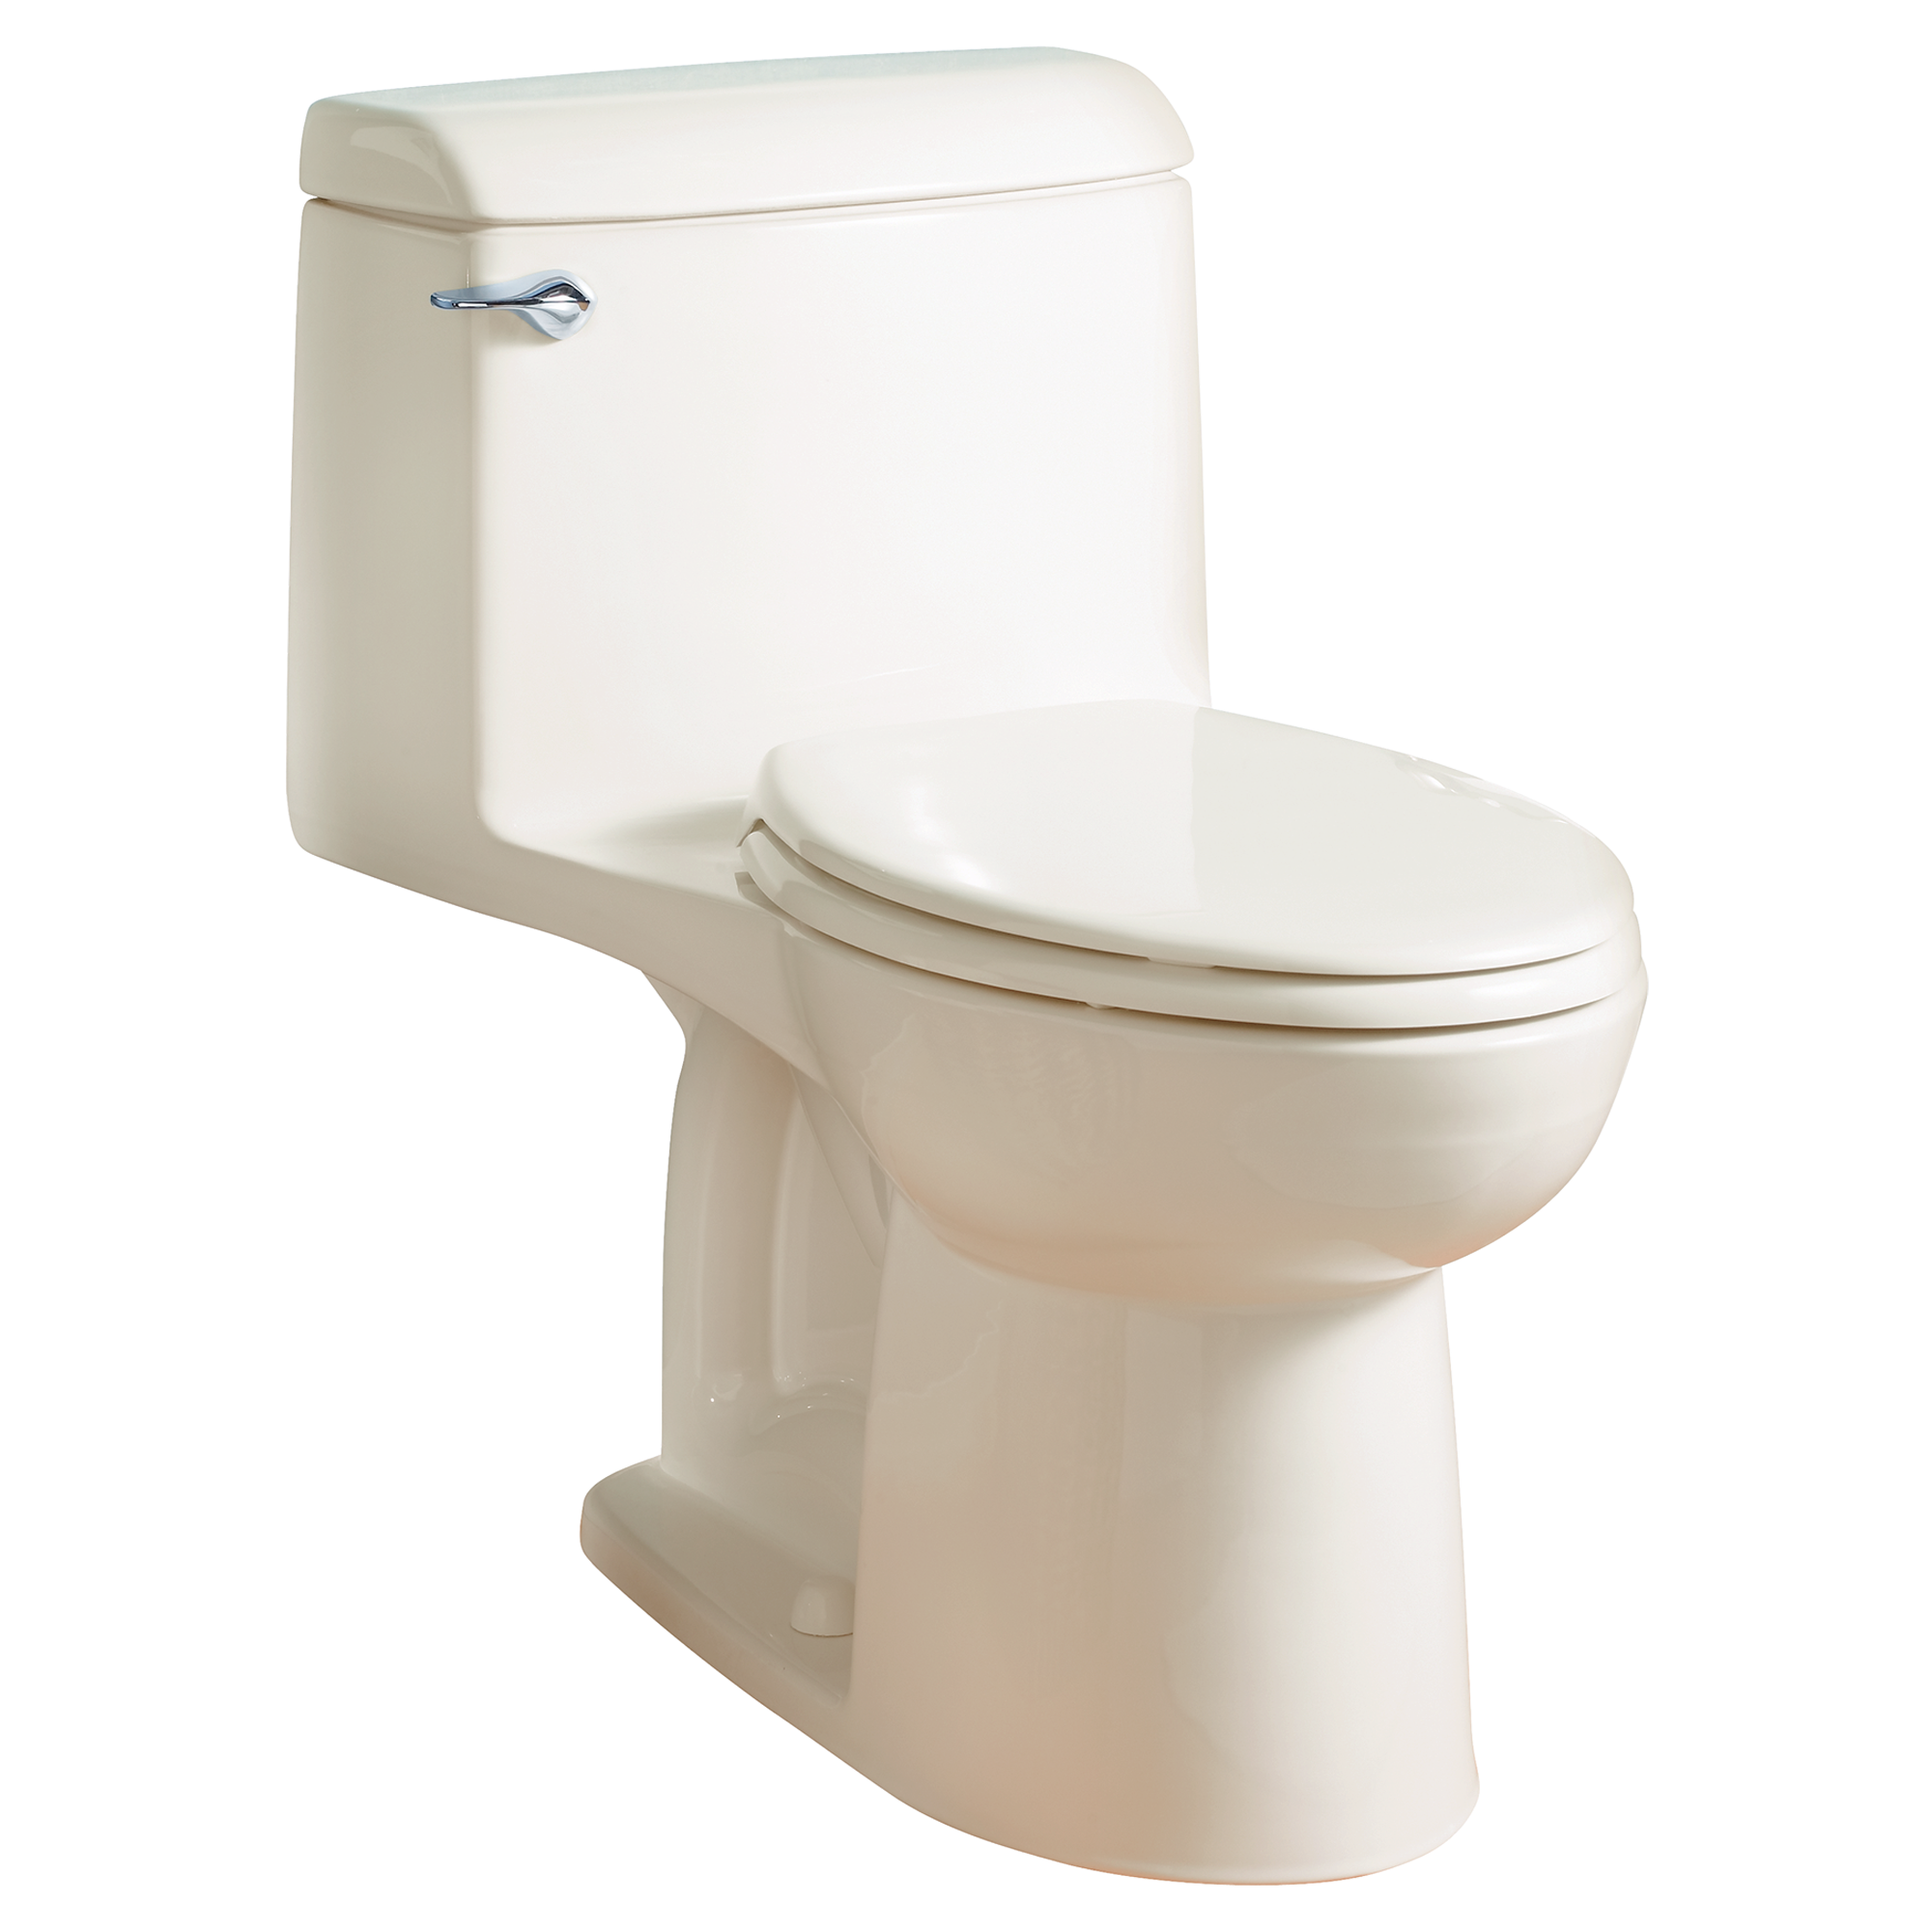 Champion 4 Elongated e Piece Toilet 1 6 GPF with Toilet Seat